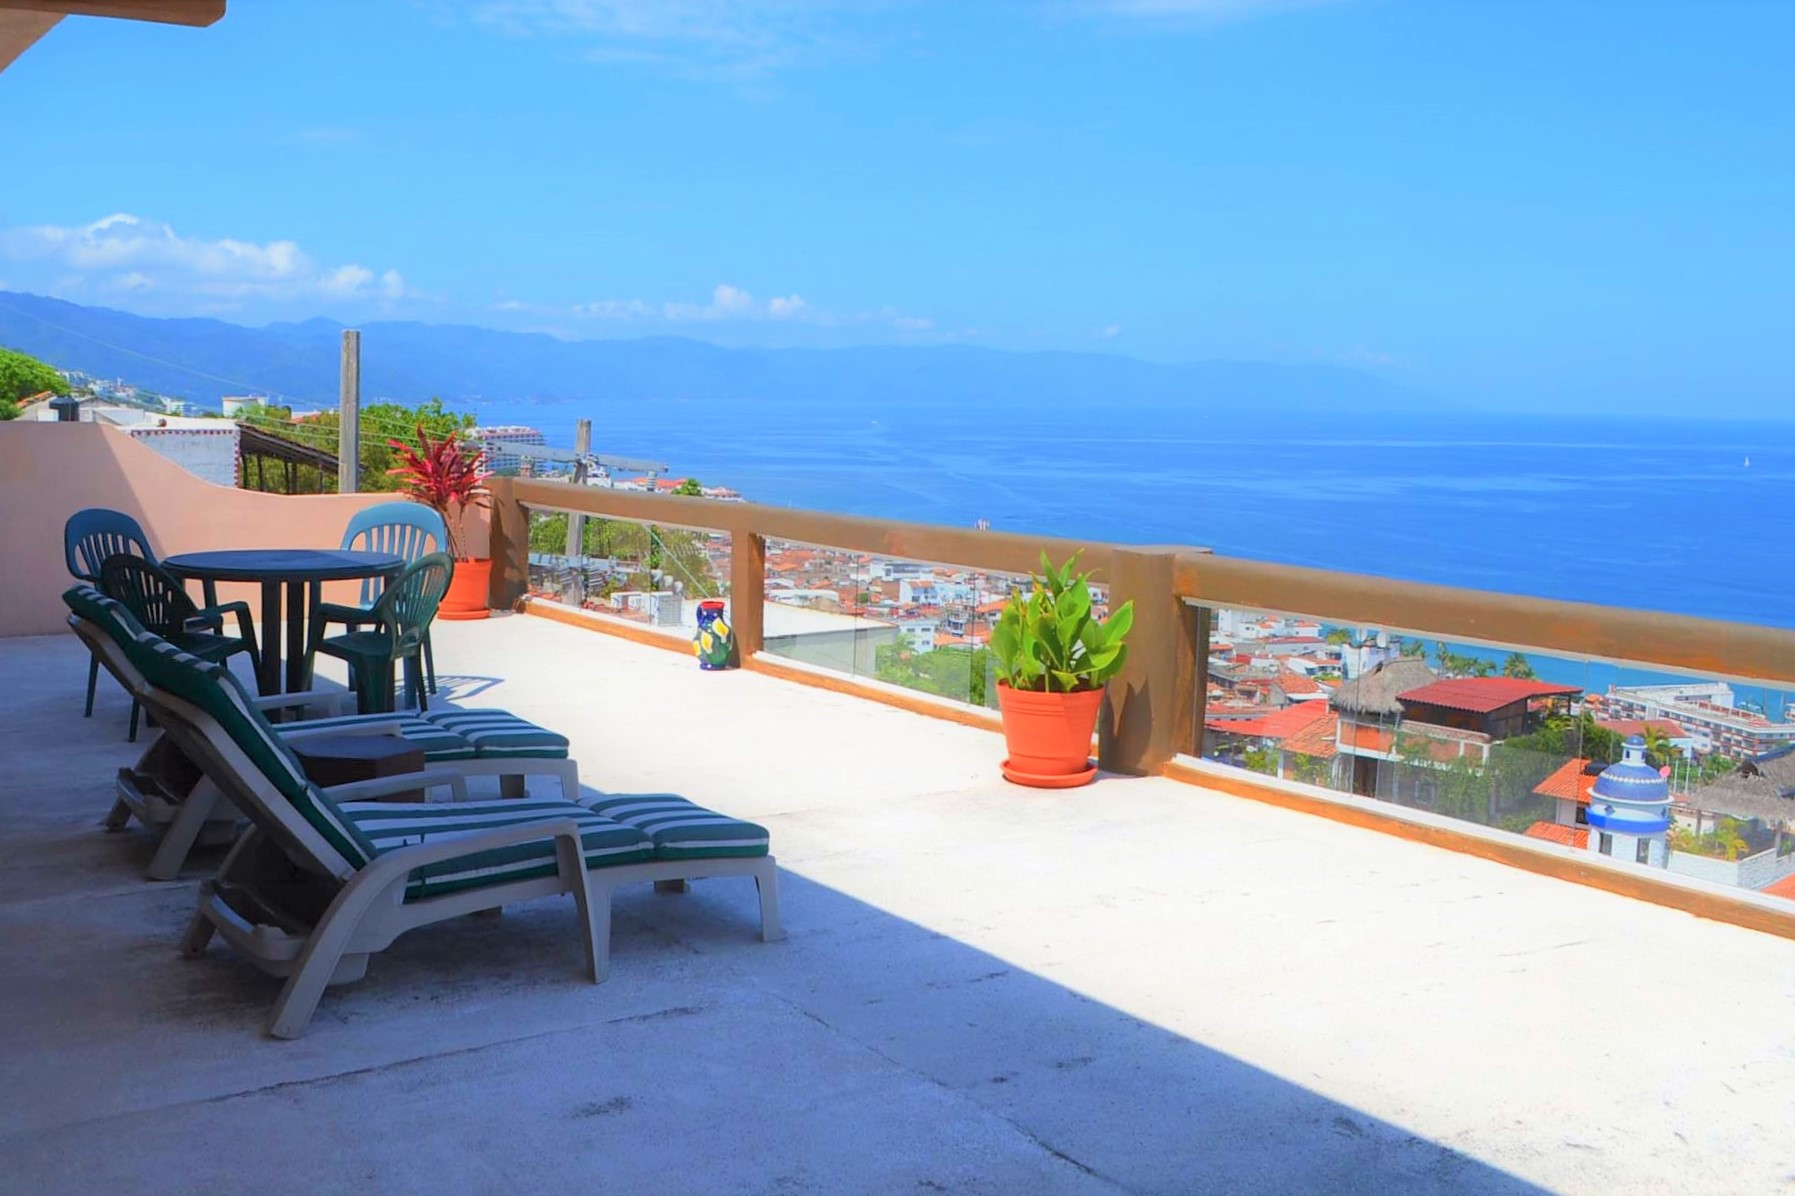 Penthouse Costa Rica – Vallarta Dream Rentals